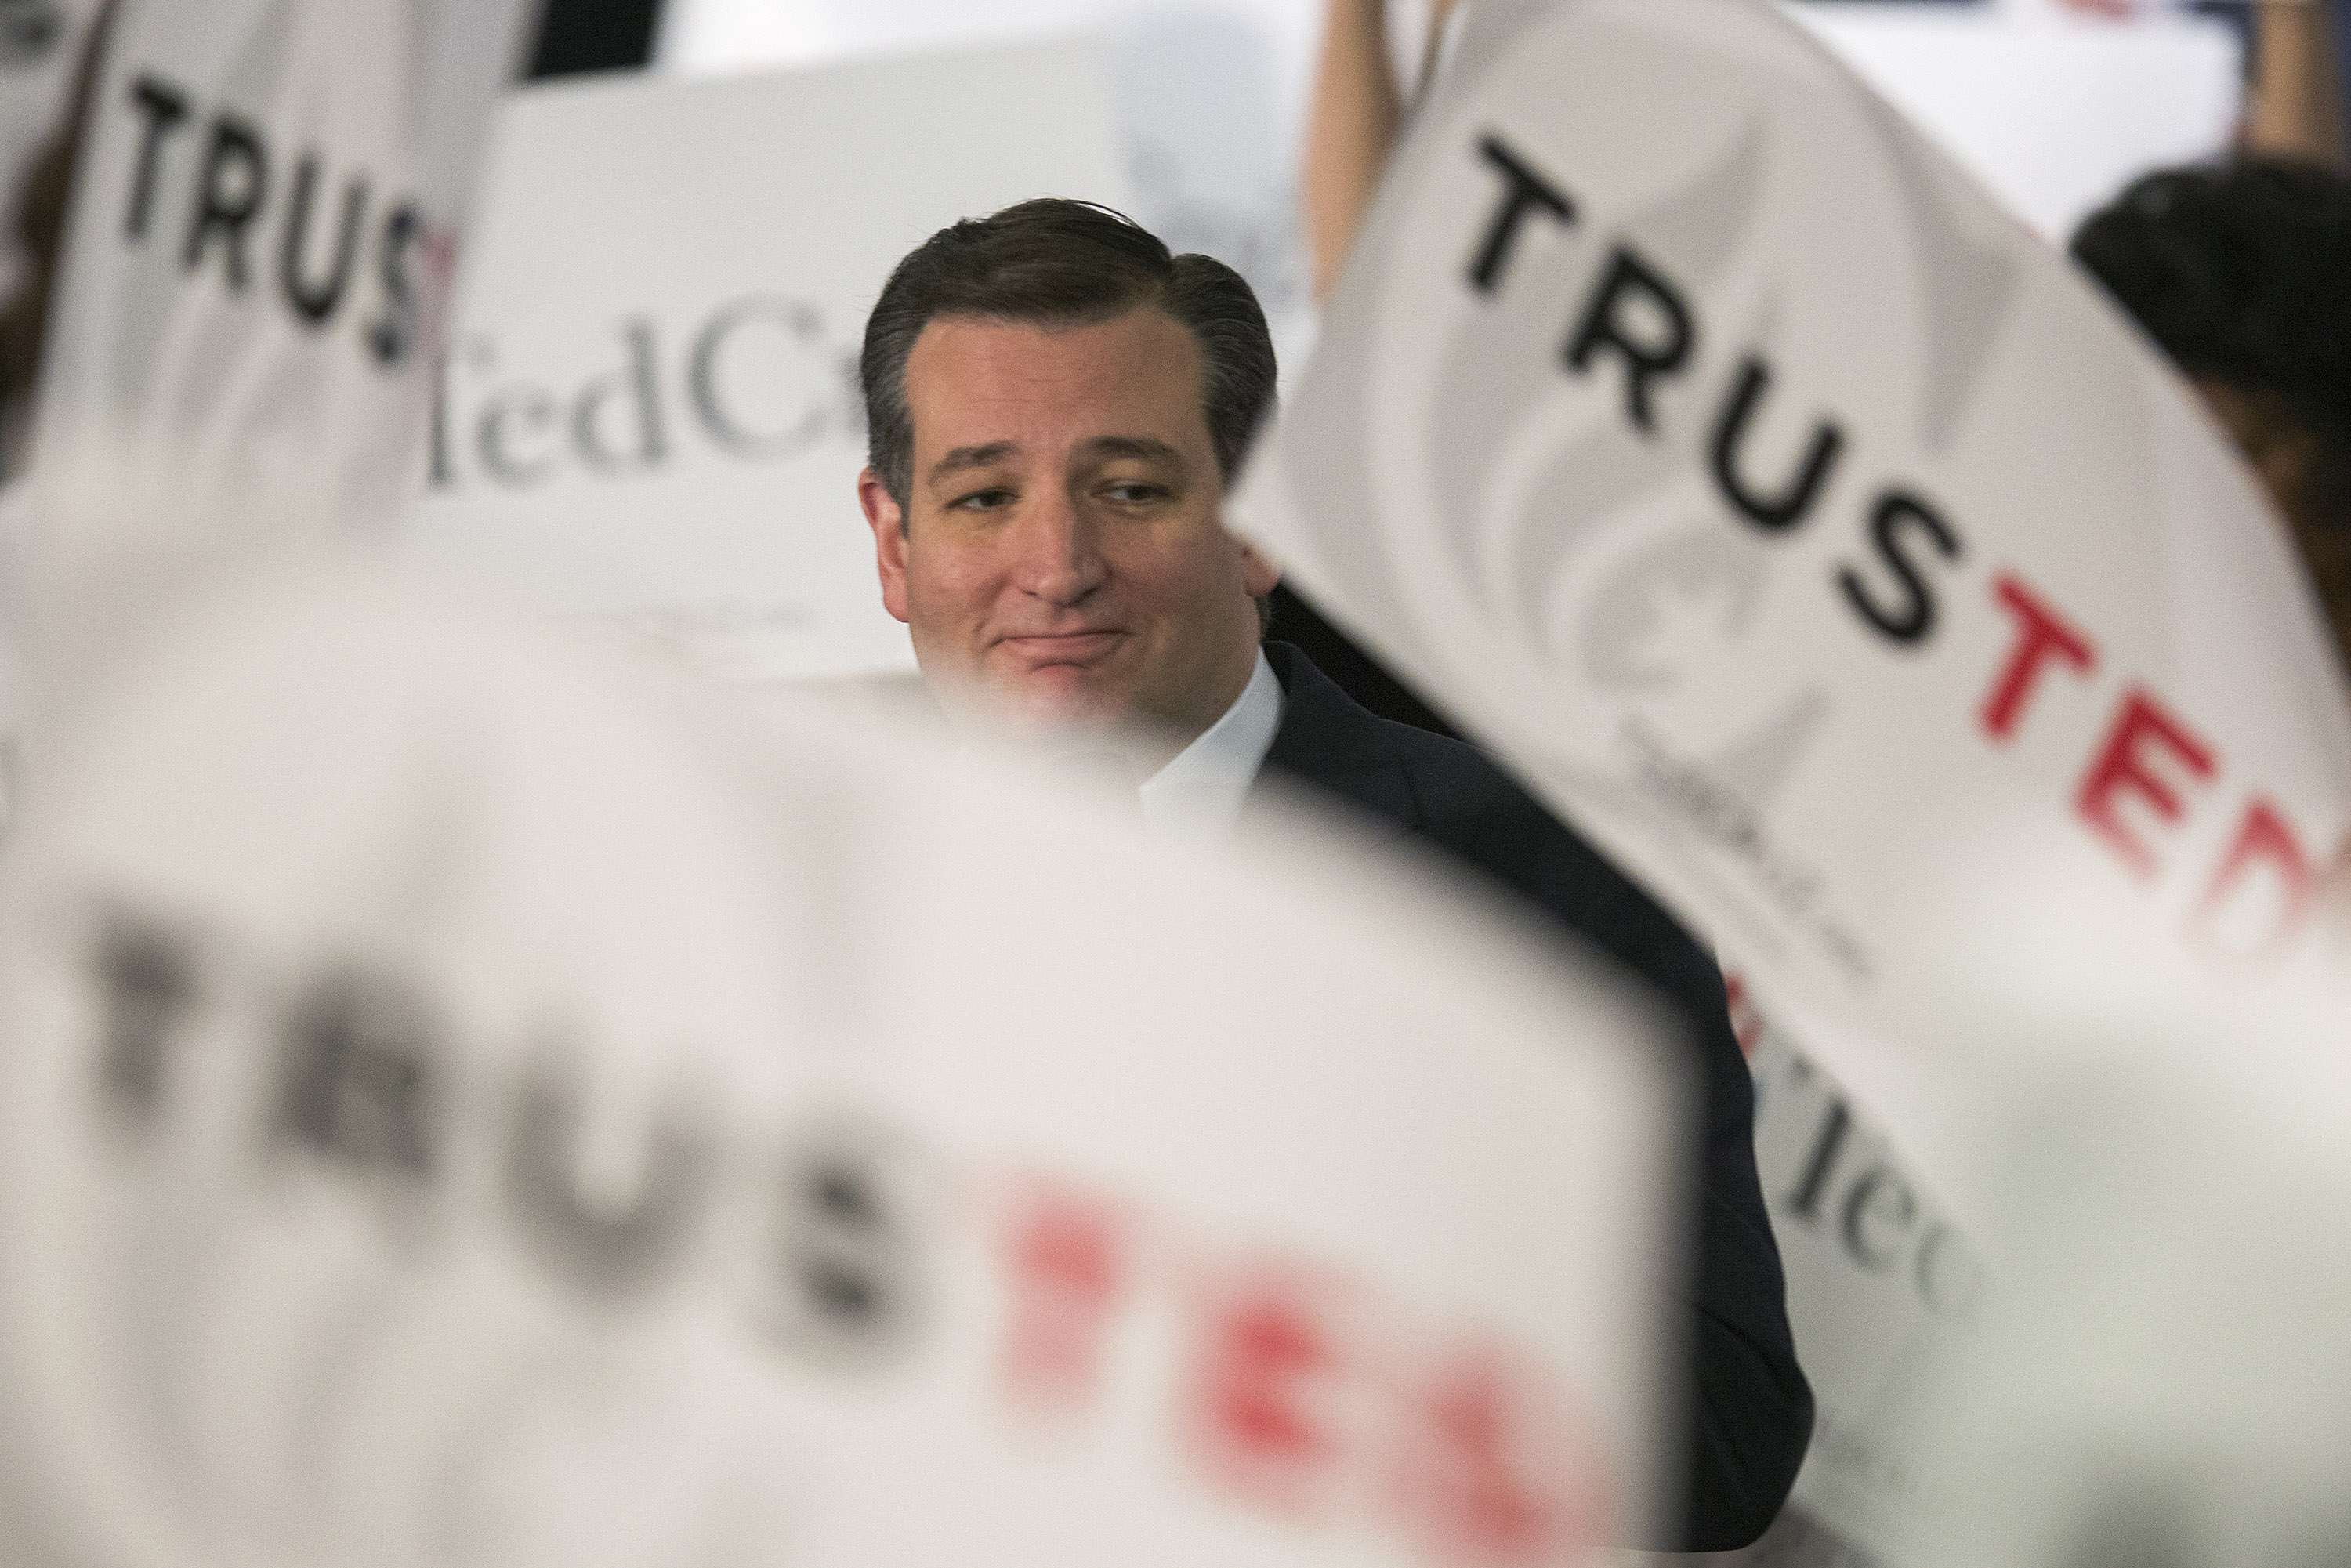 Sen. Ted Cruz (R-TX) attends a campaign rally on April 11, 2016 in Irvine, California.